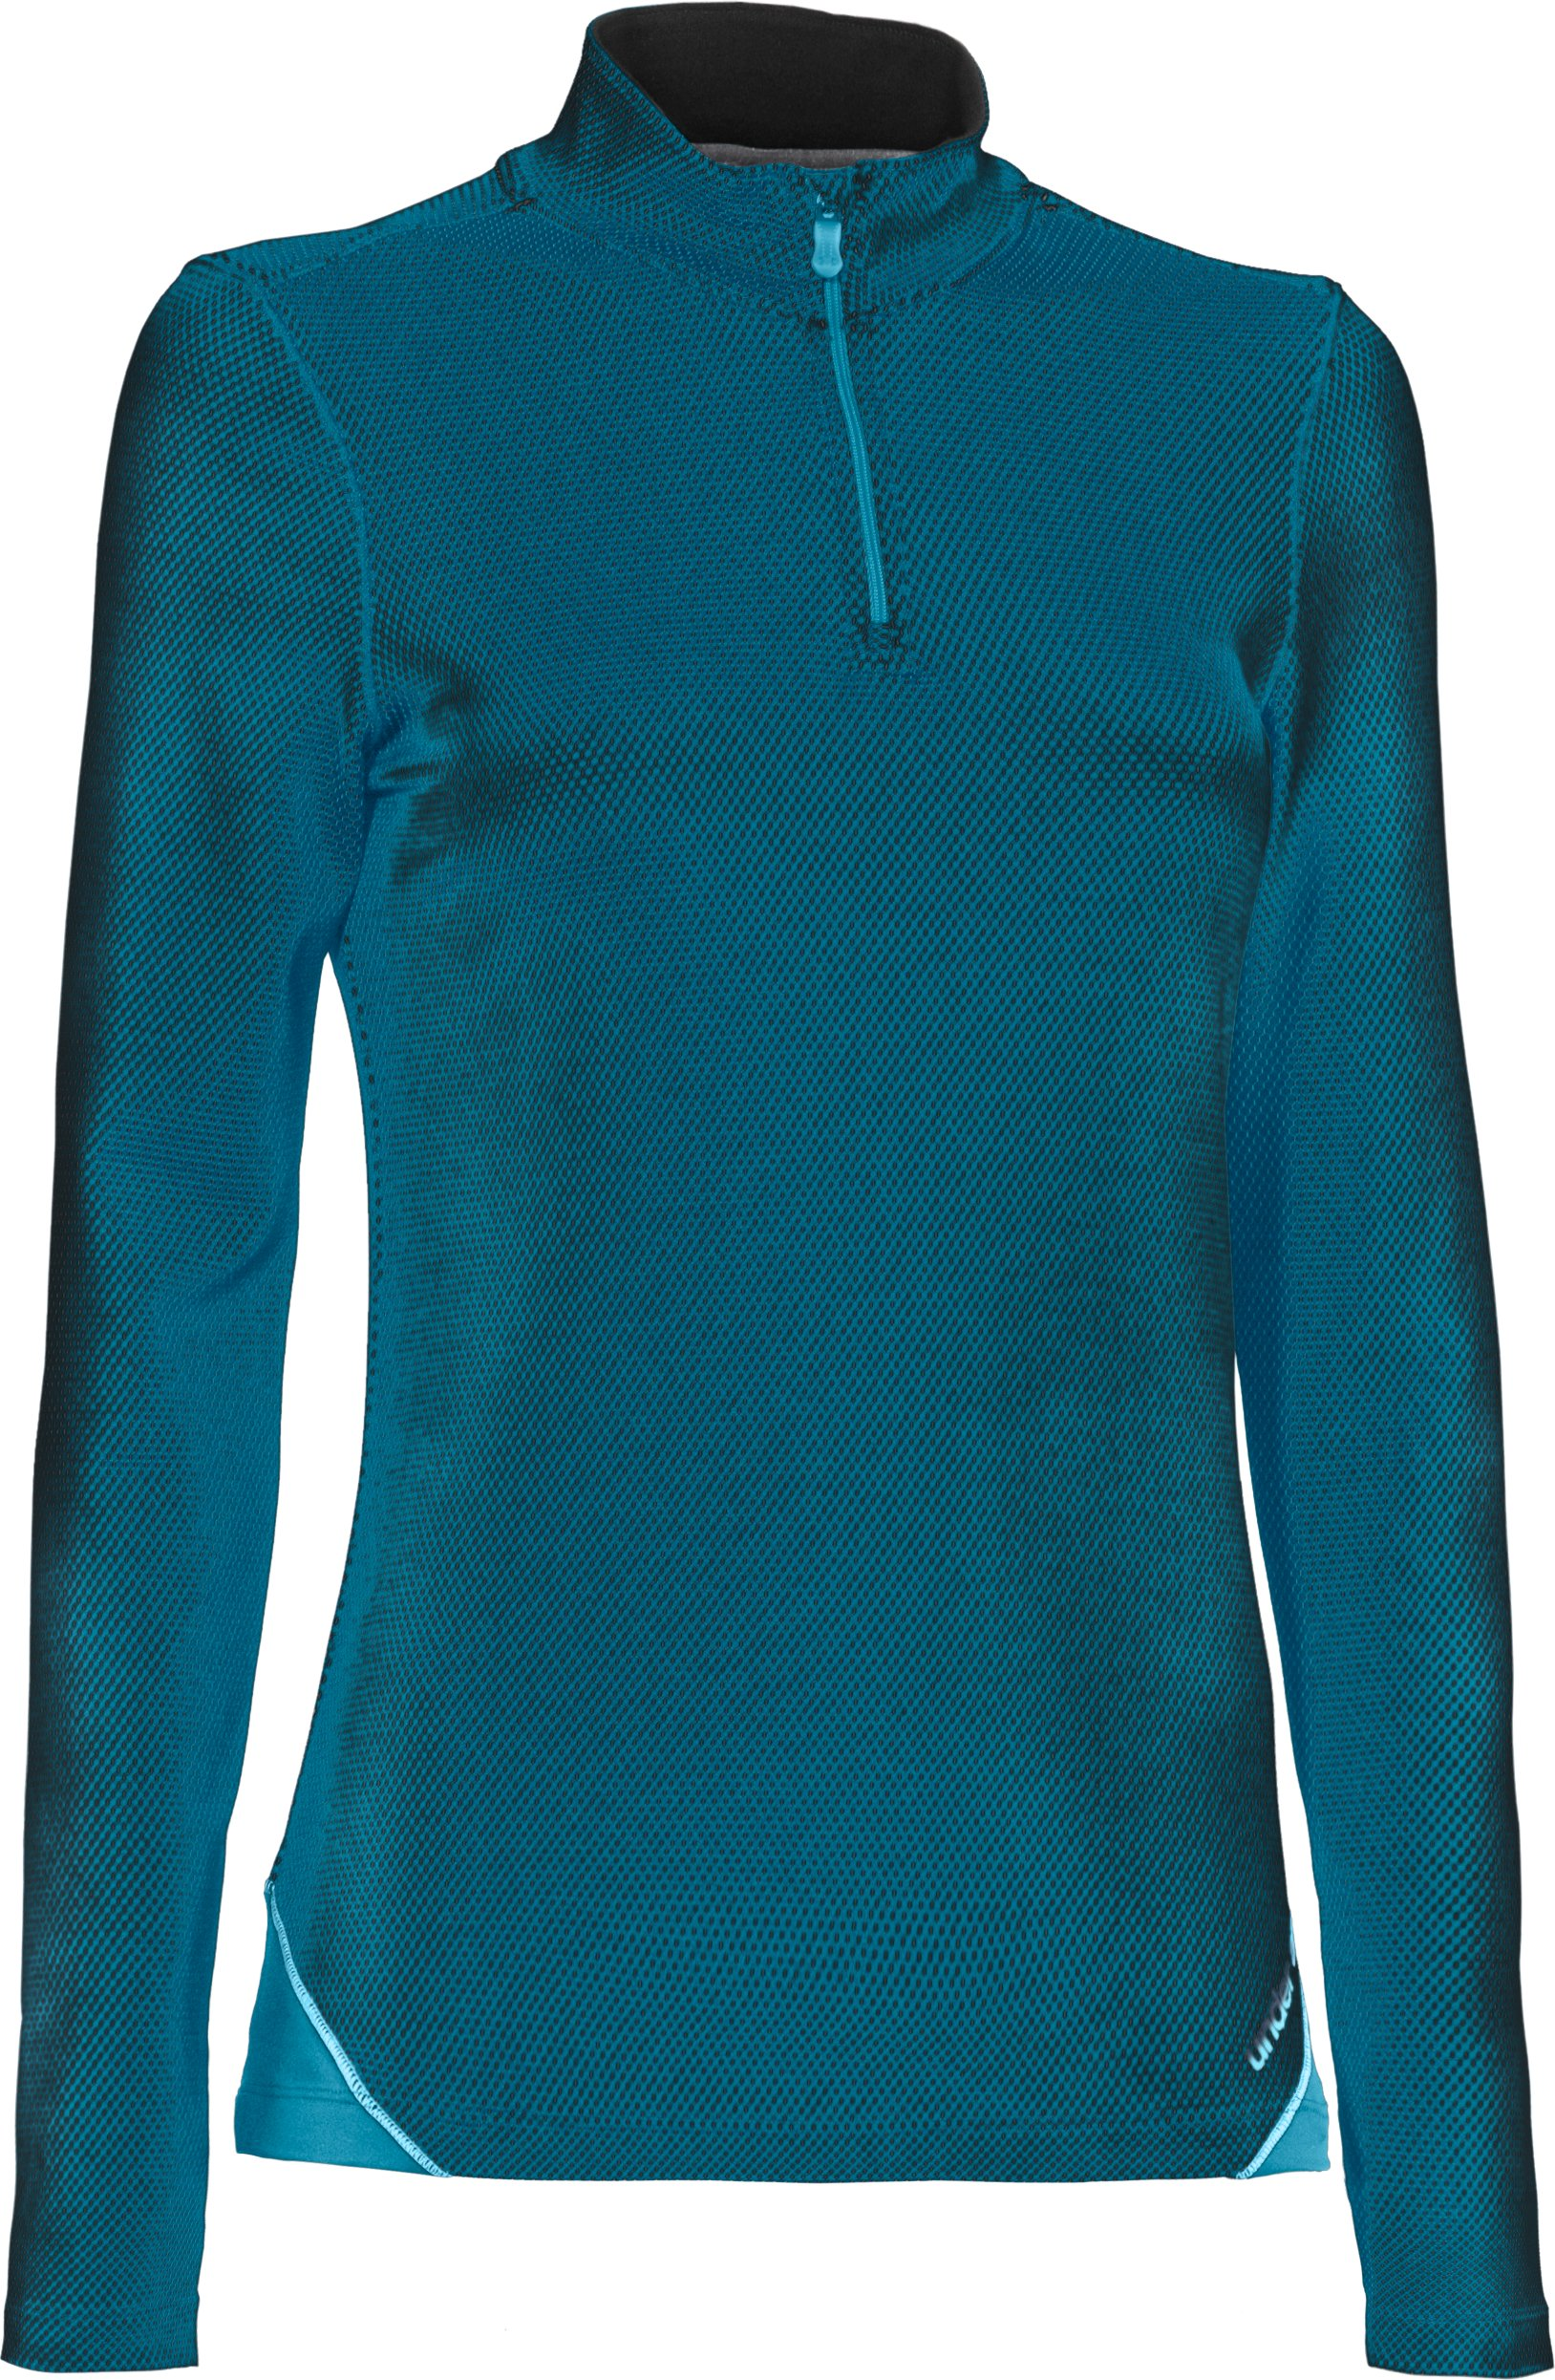 Women's ColdGear® Thermo ¼ Zip, Break